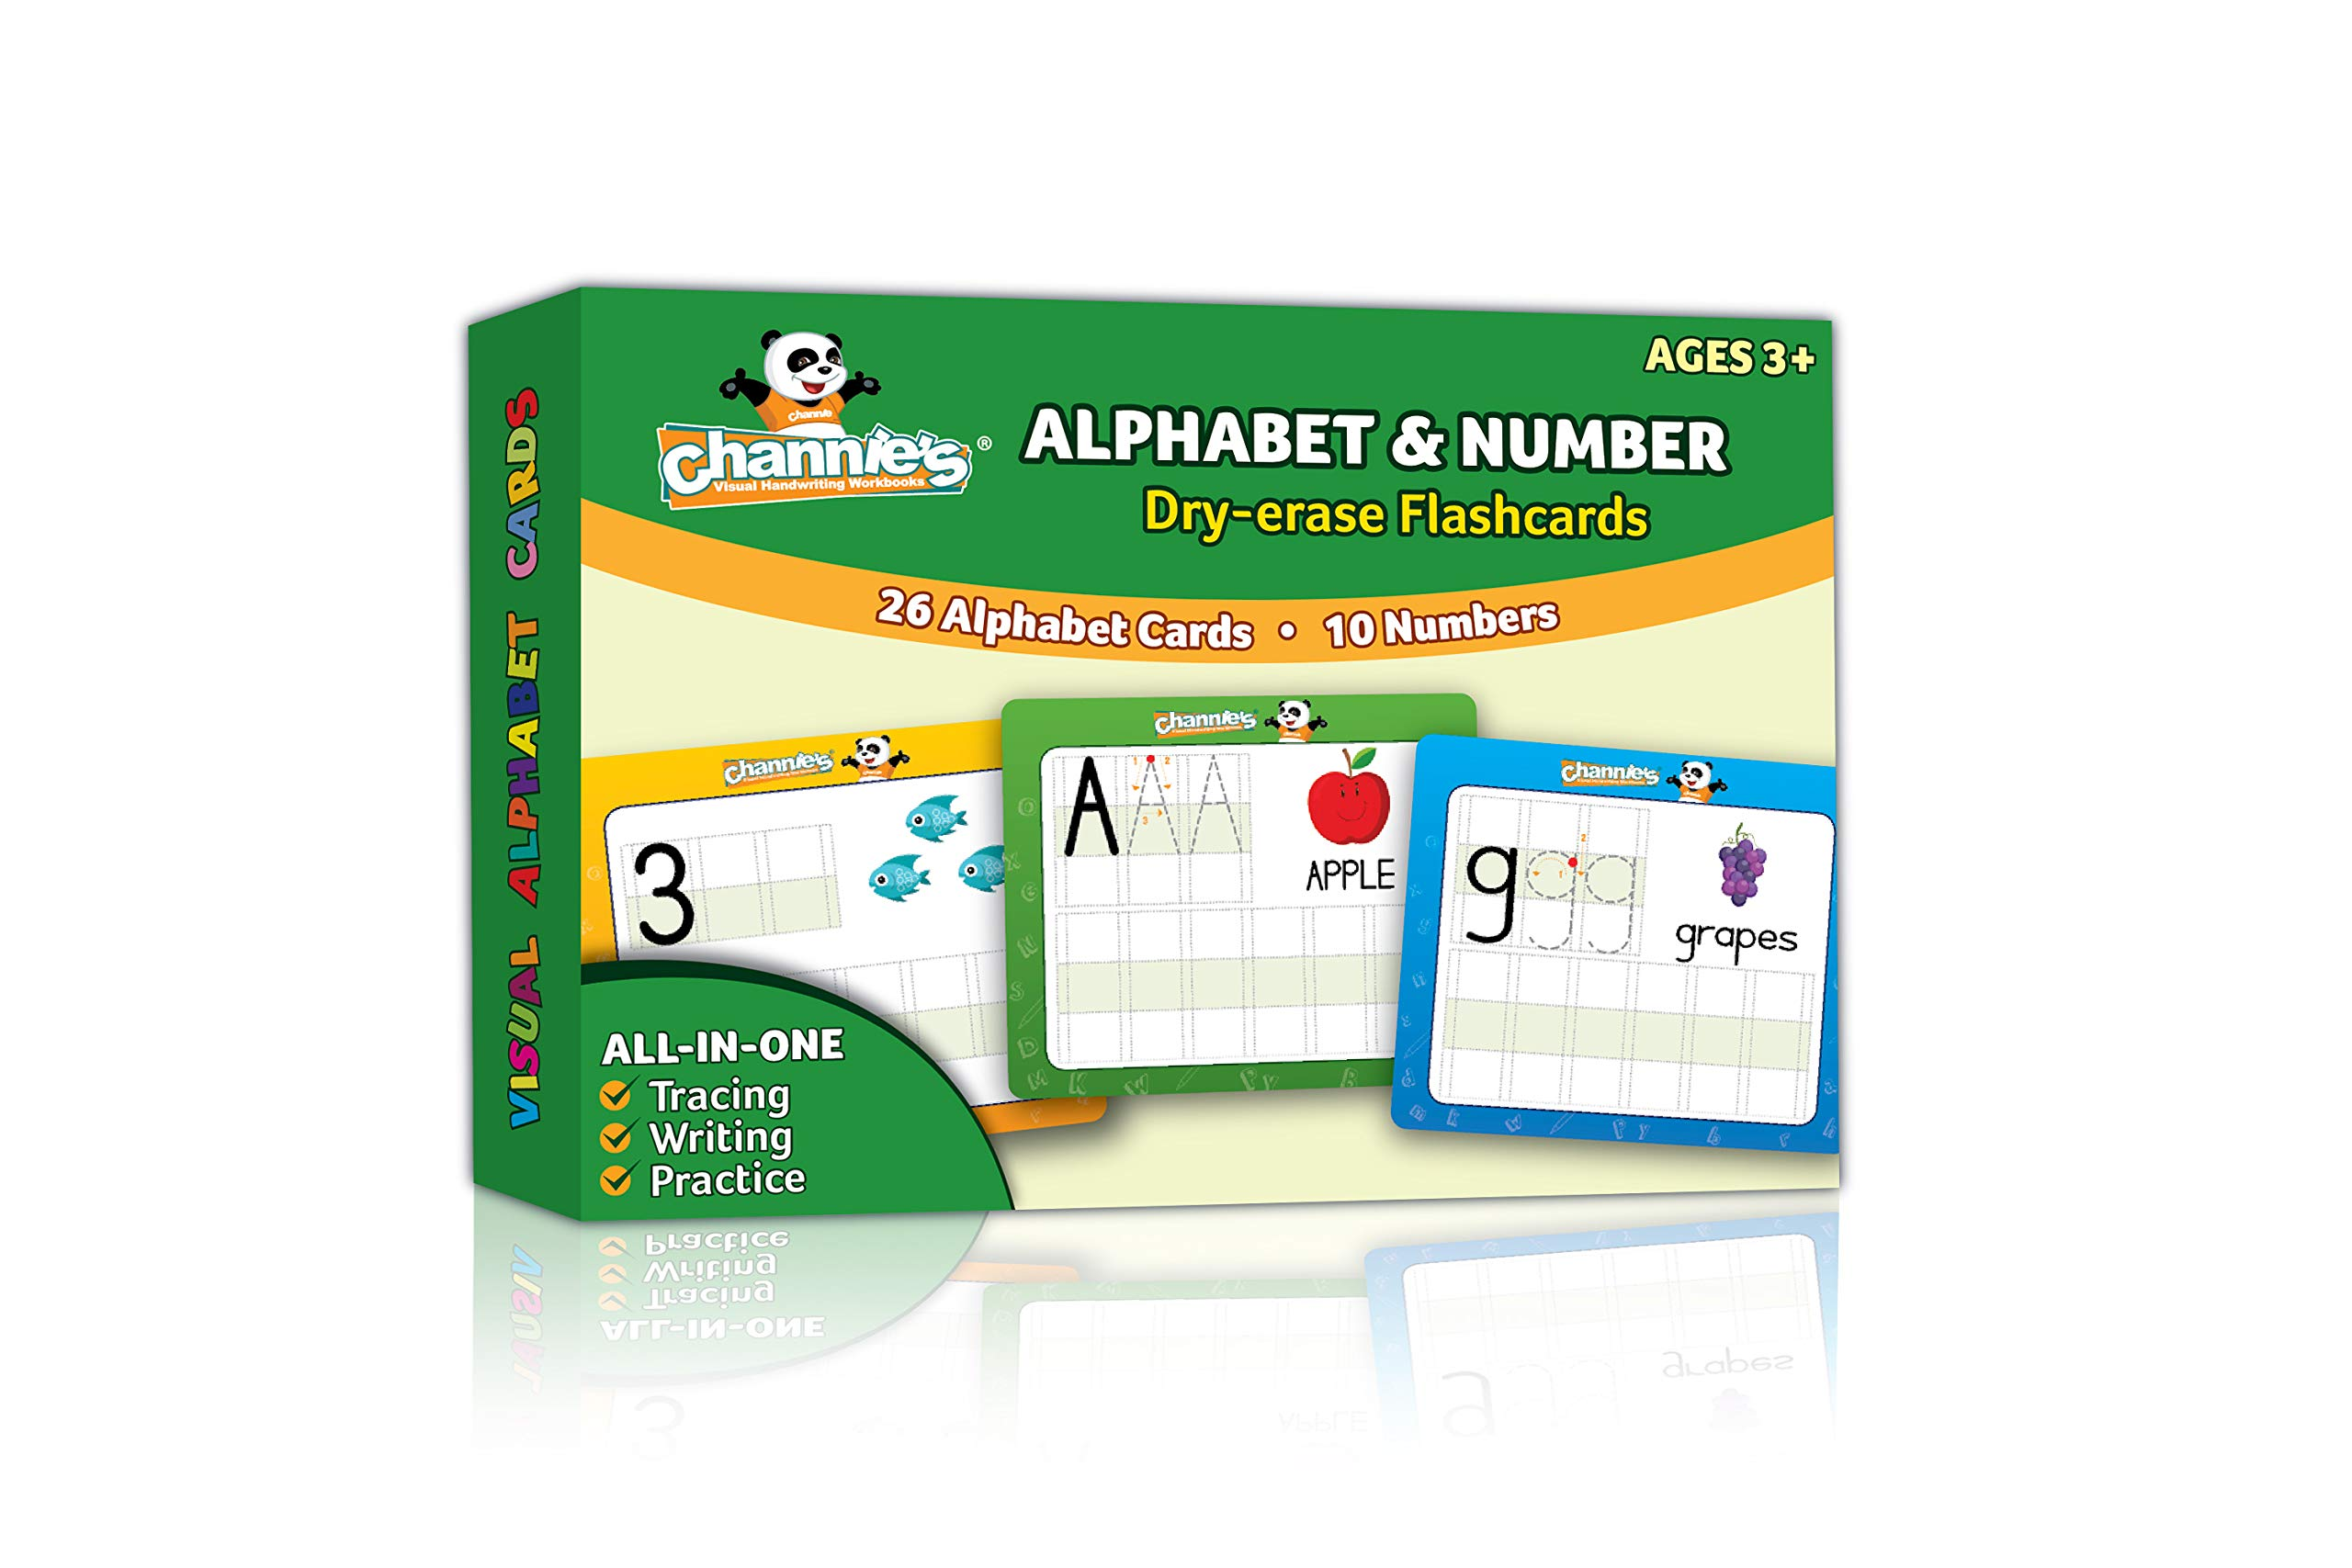 Channie's Visual Dry Erase Alphabet & Numbers Flashcards, Tracing, Practicing & Writing, ALL In One Flash Cards Size 5.5'' x 4.25 '', Ages 3 and Up, PreK - 1st